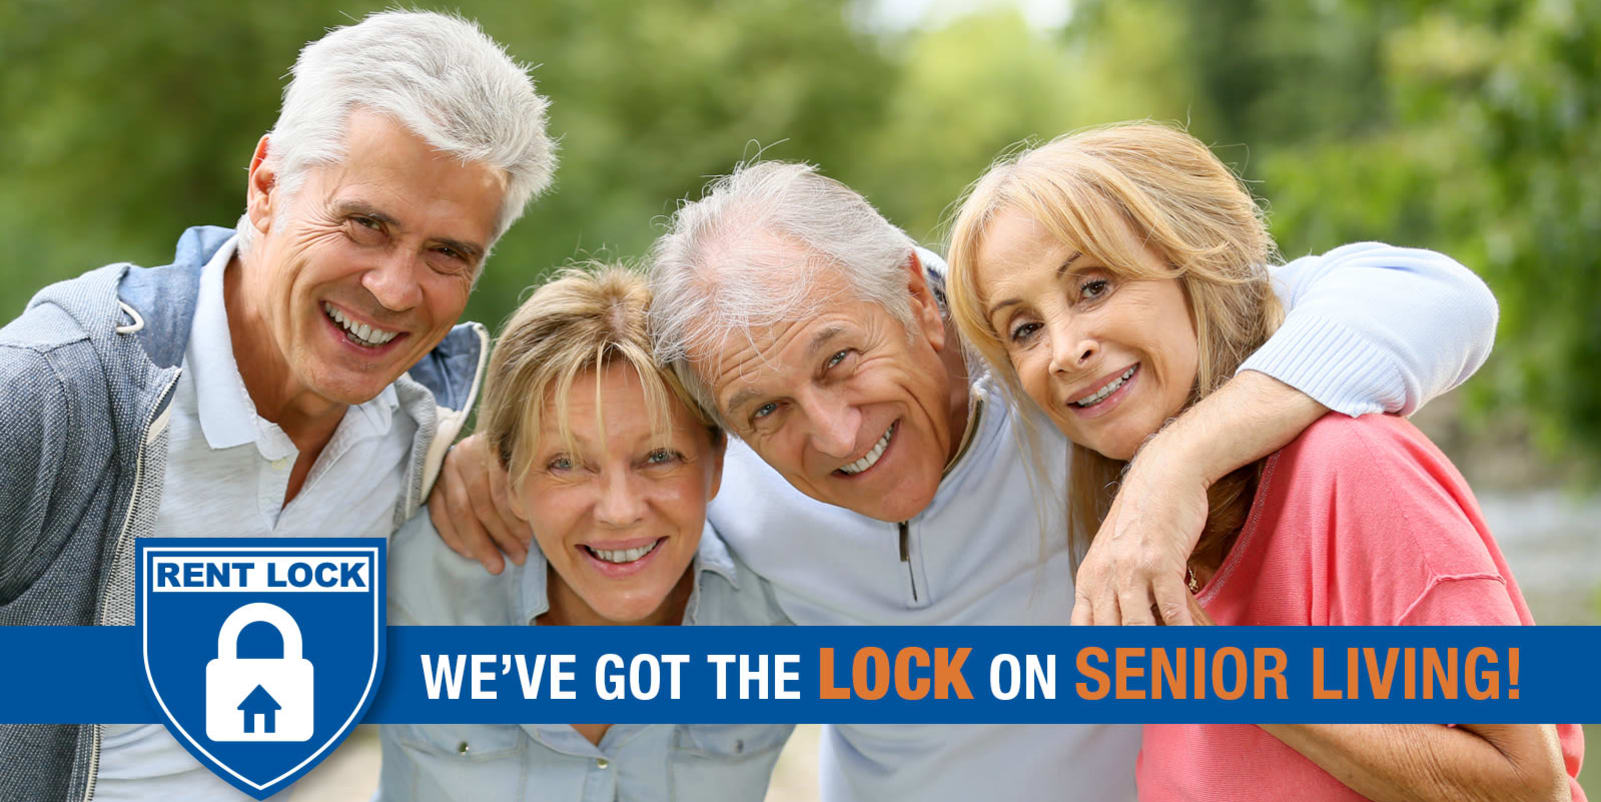 Senior living options at the senior living community in Suwanee